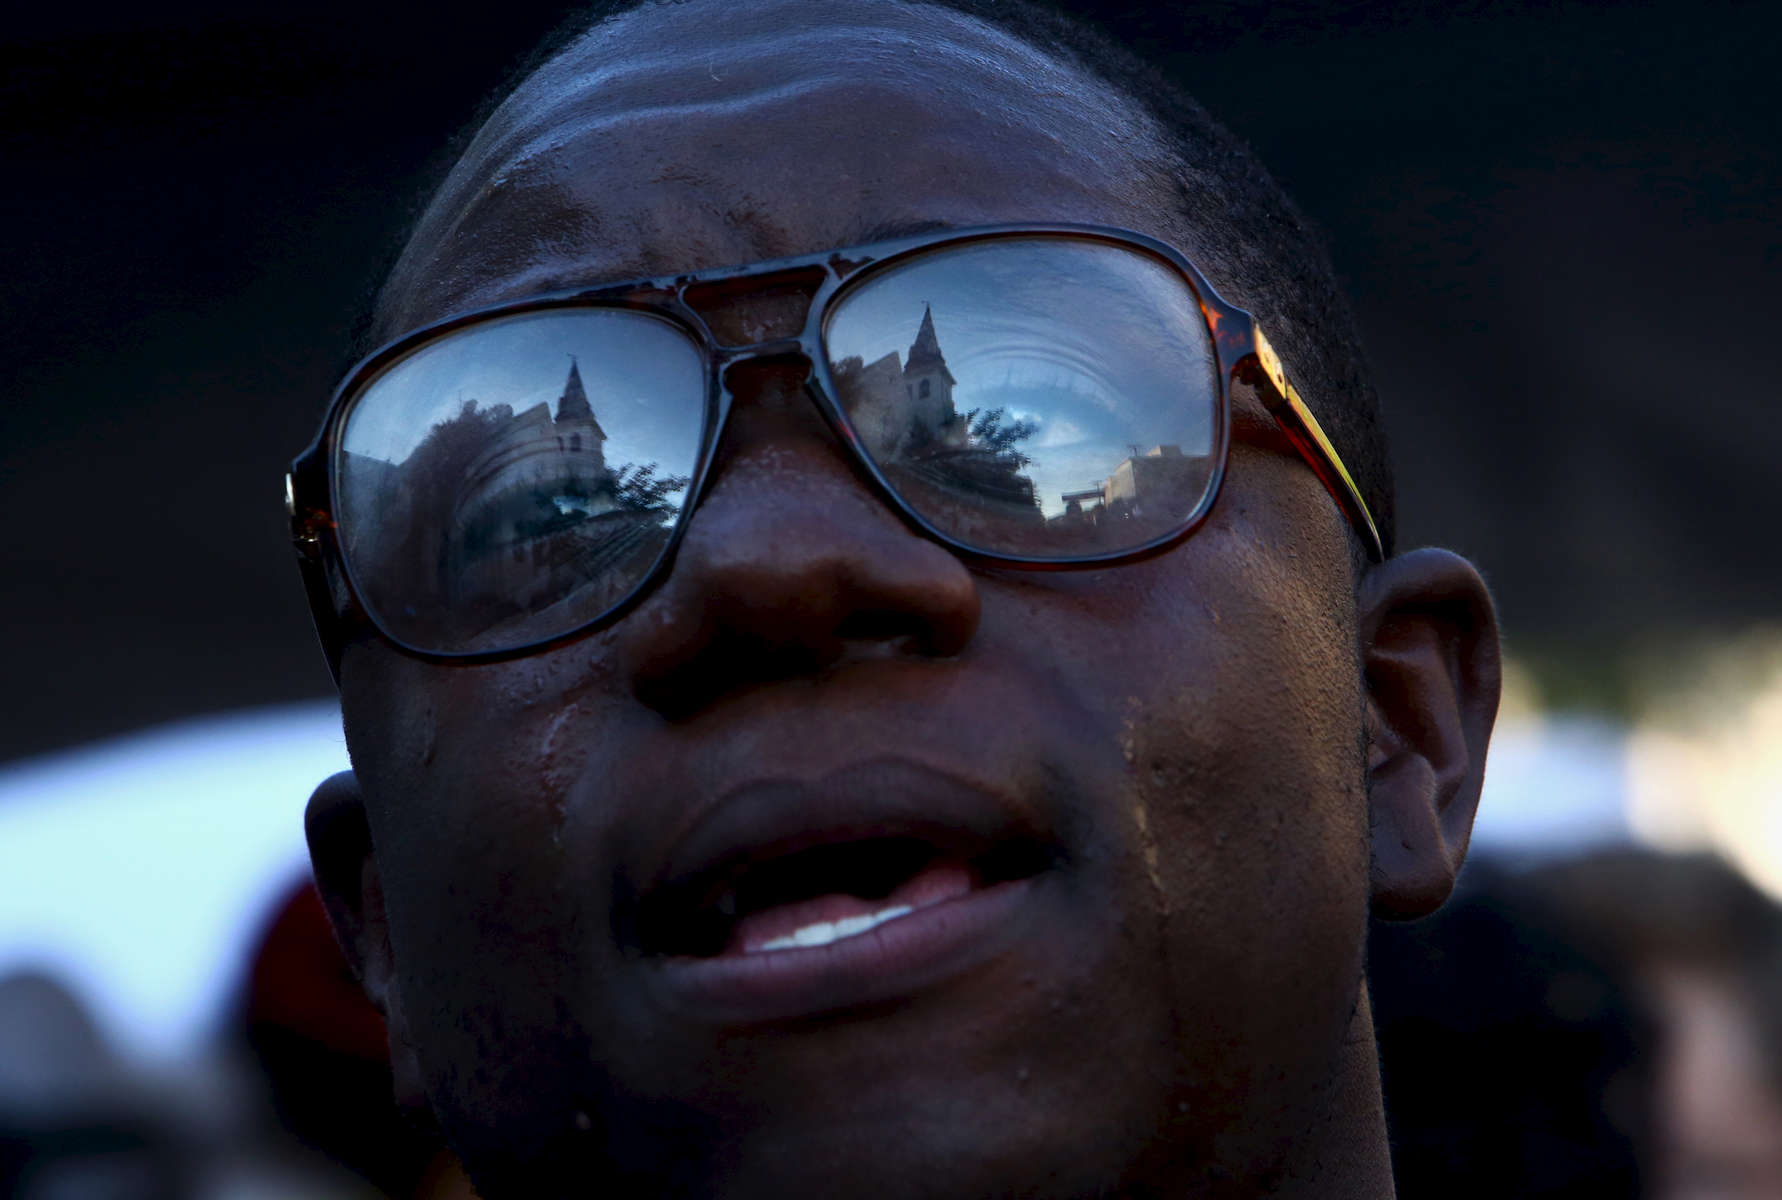 NAT *** Charleston, SC -- 06/20/2015 - Emanuel AME Church is reflected in the glasses of Michael Weeks of North Charleston as he sings outside on Saturday evening. (Travis Dove for The New York Times)